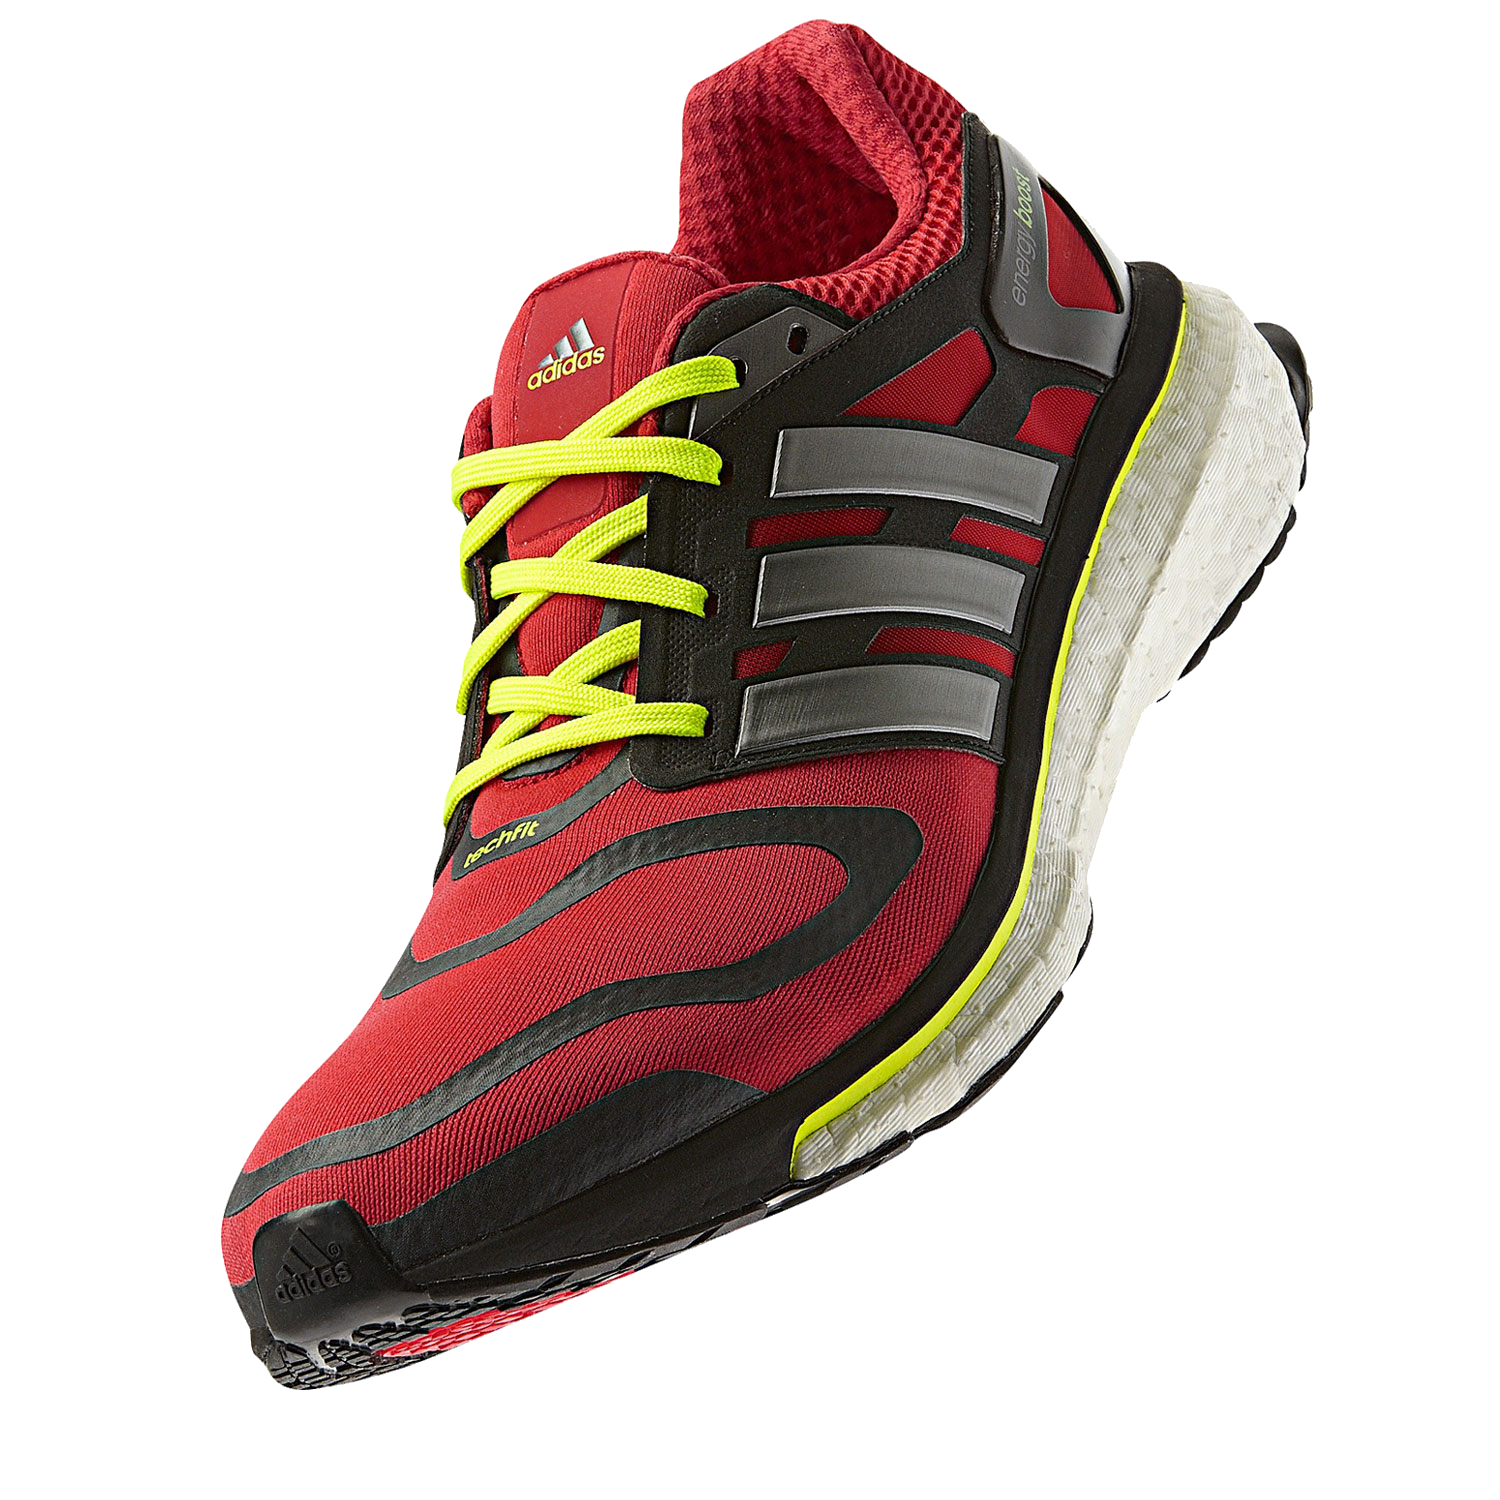 Adidas Shoes Png Picture PNG Image